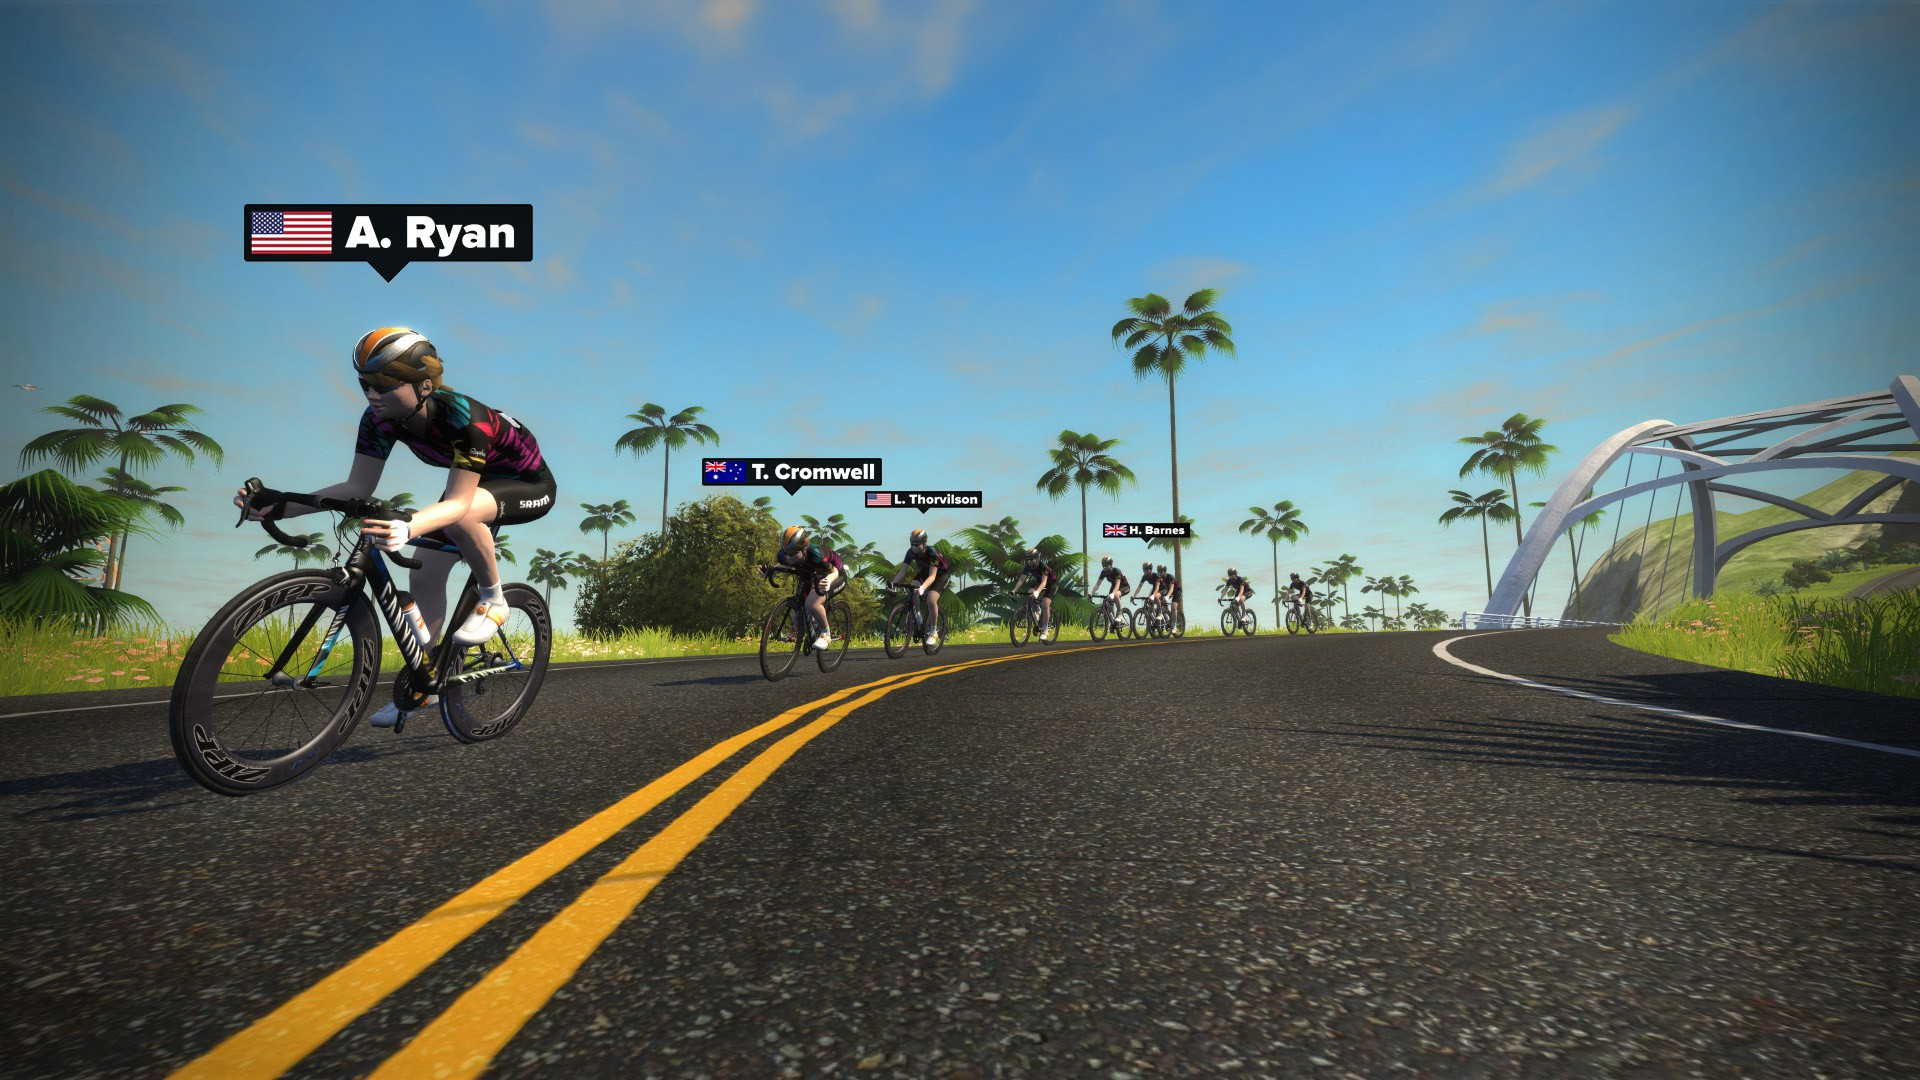 Participants in the Academy took part in rides and training programs online with Zwift